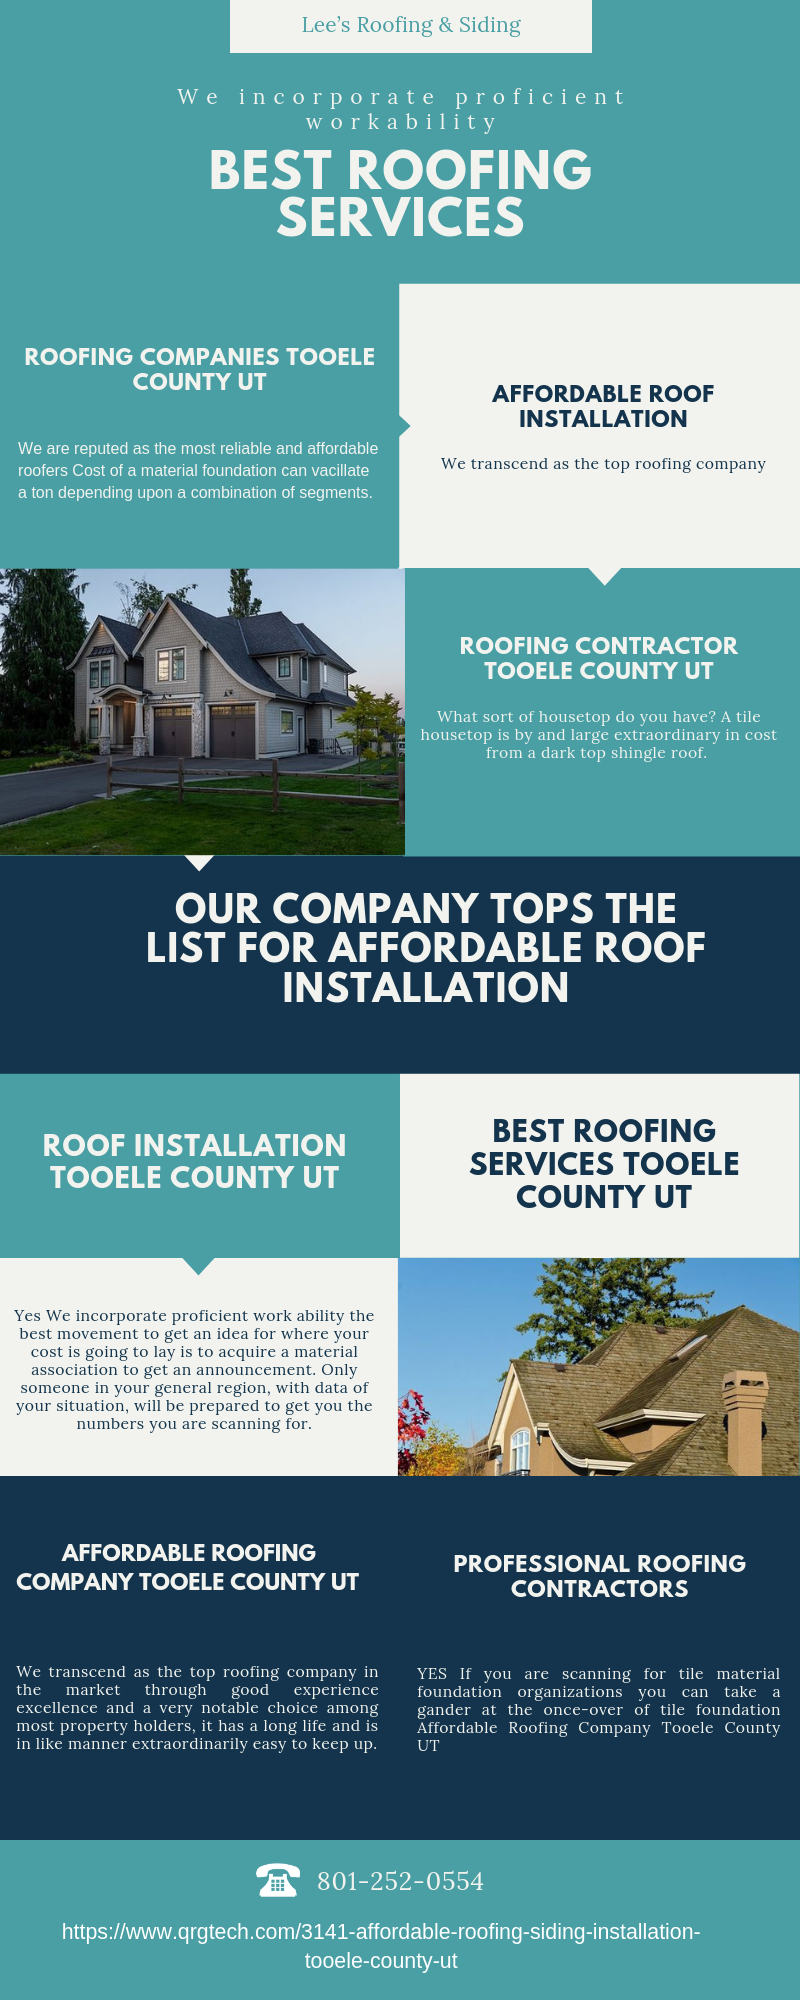 Roofing Companies Tooele County Ut Roof Installation Tooele County Tooele